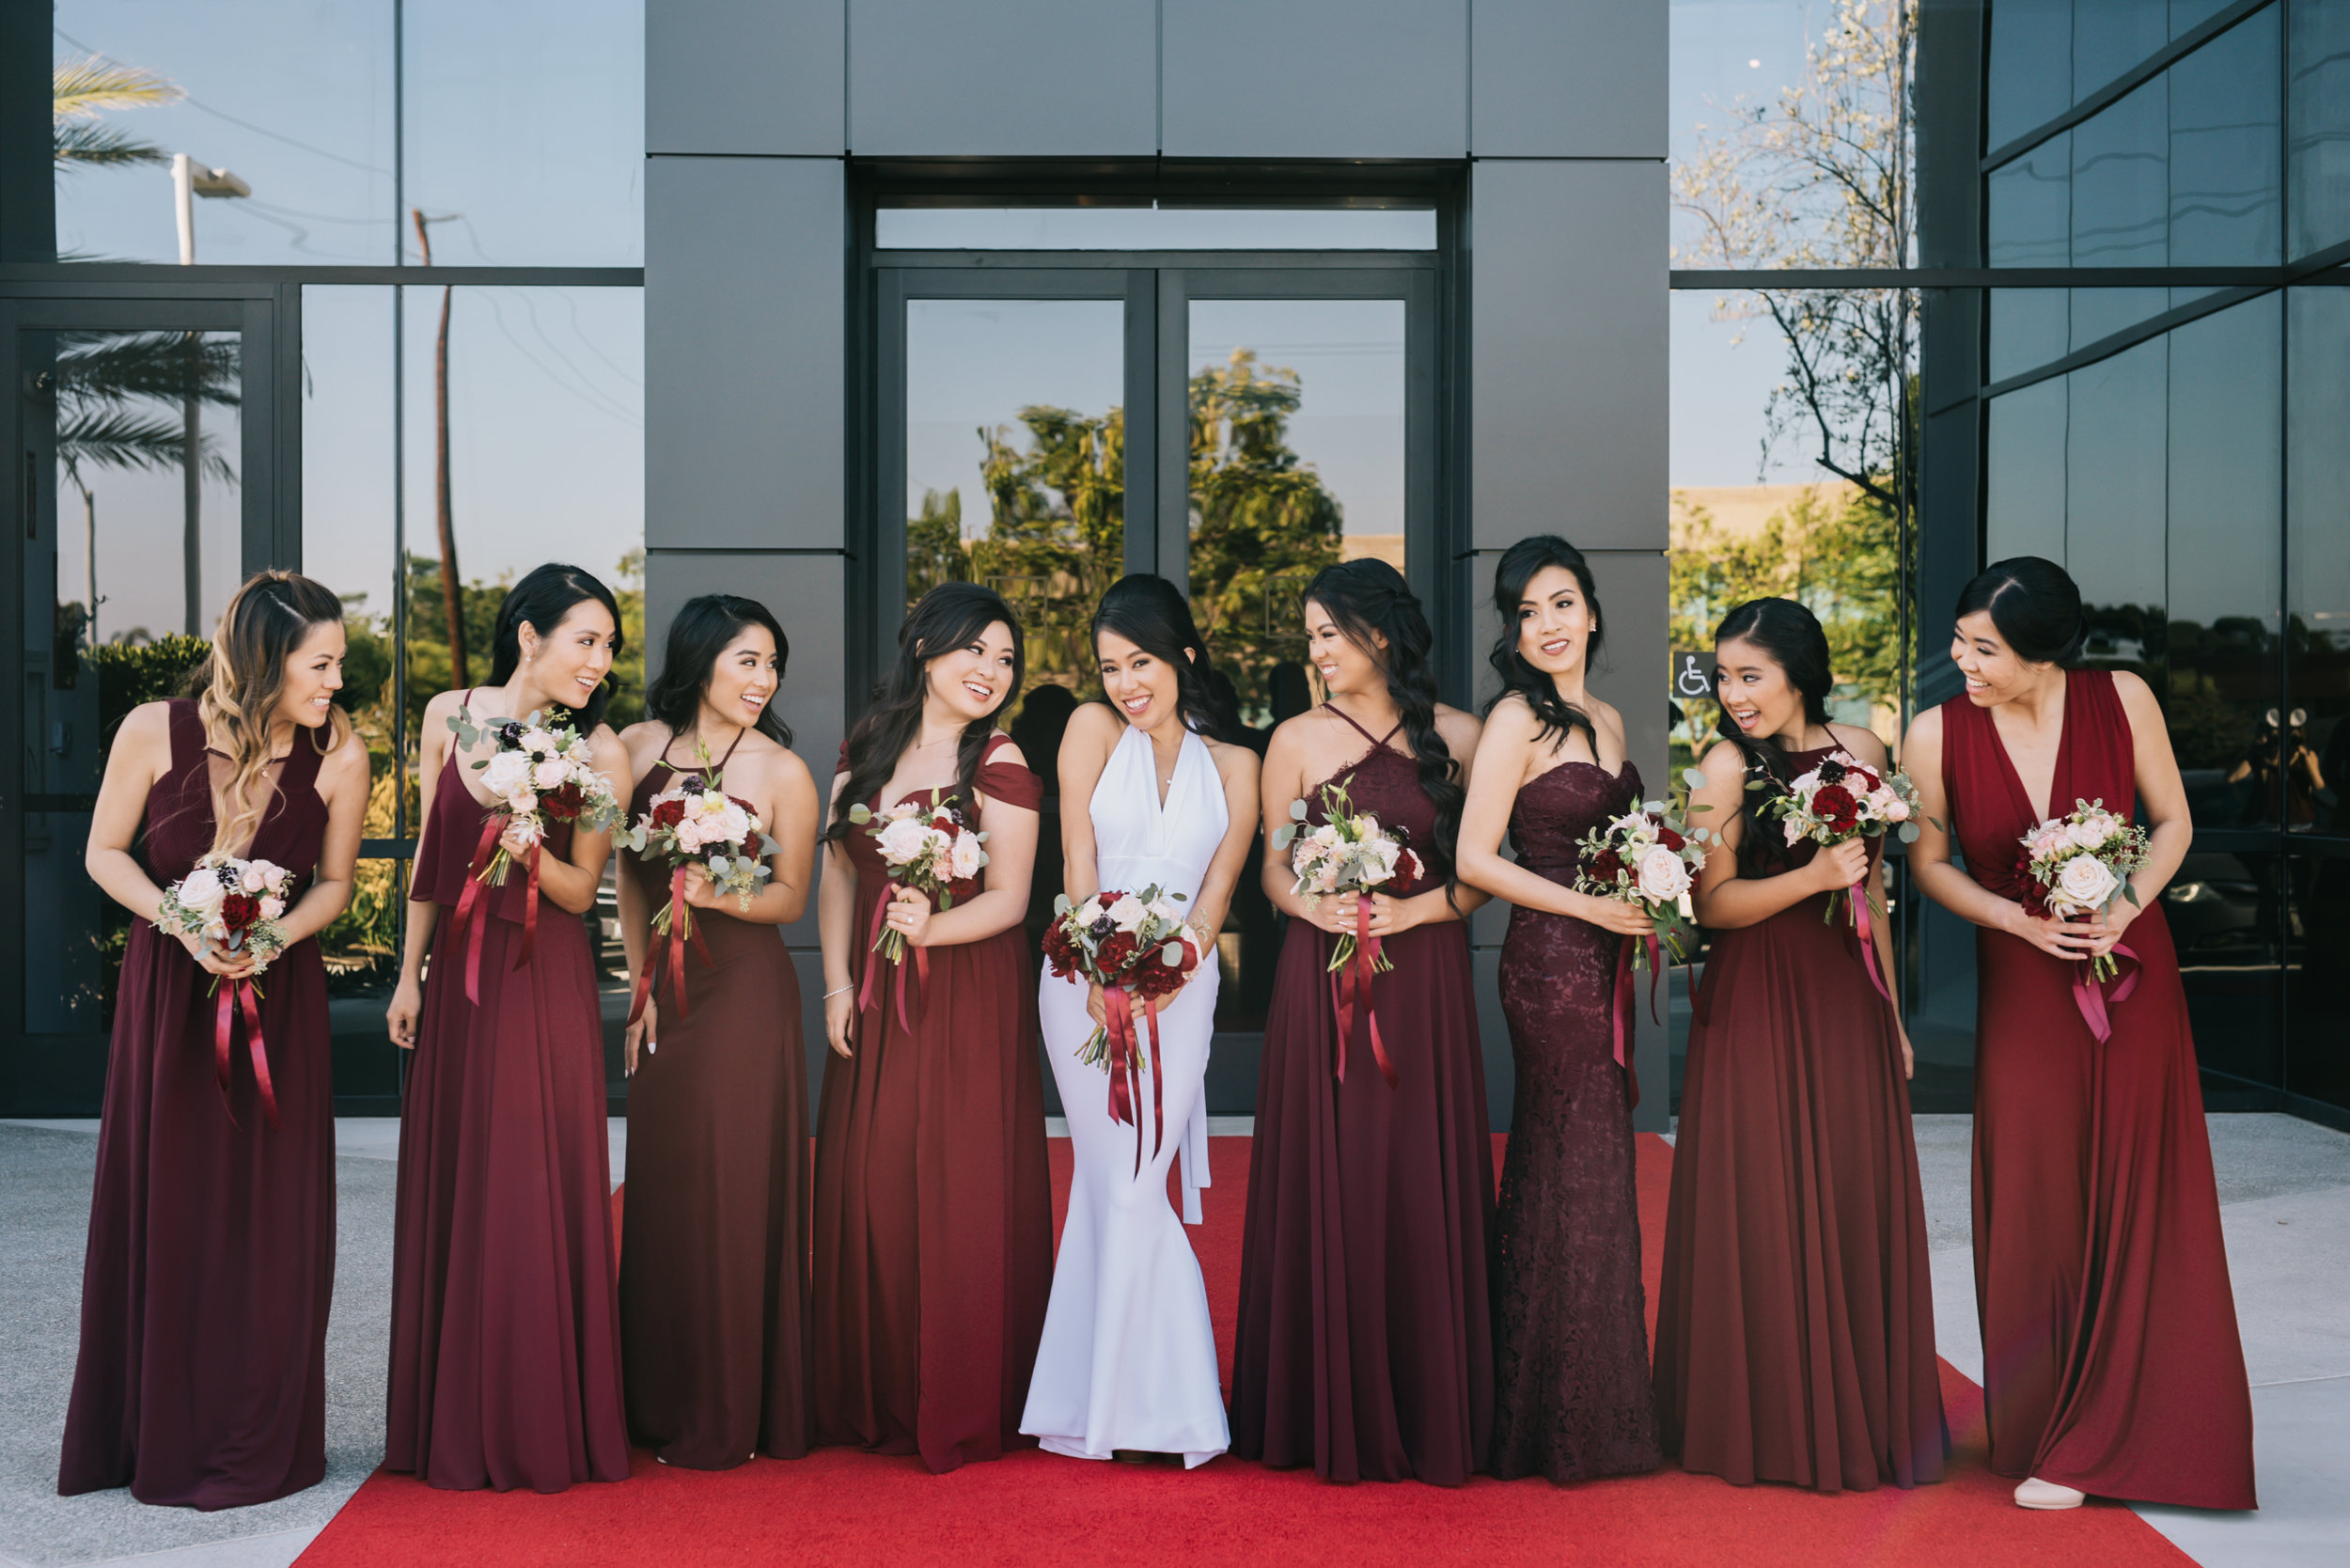 JKLove married - Carissa Woo Photography-690.jpg